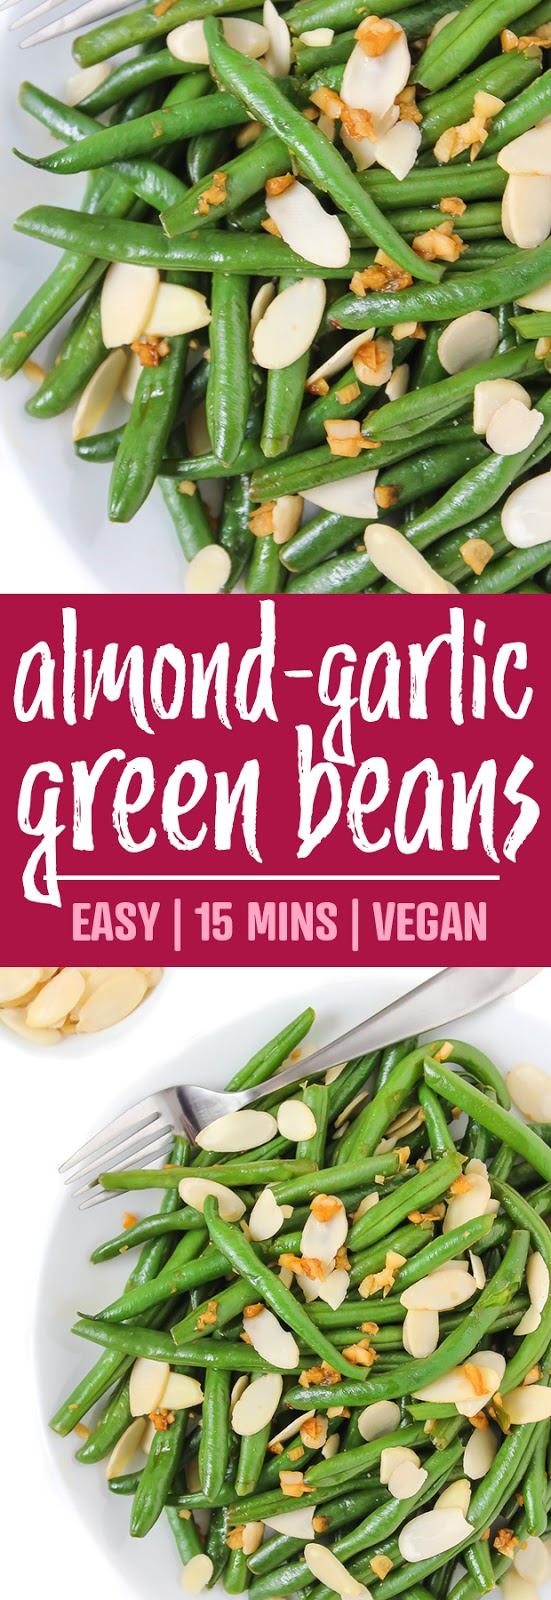 photo collage of almond garlic green beans